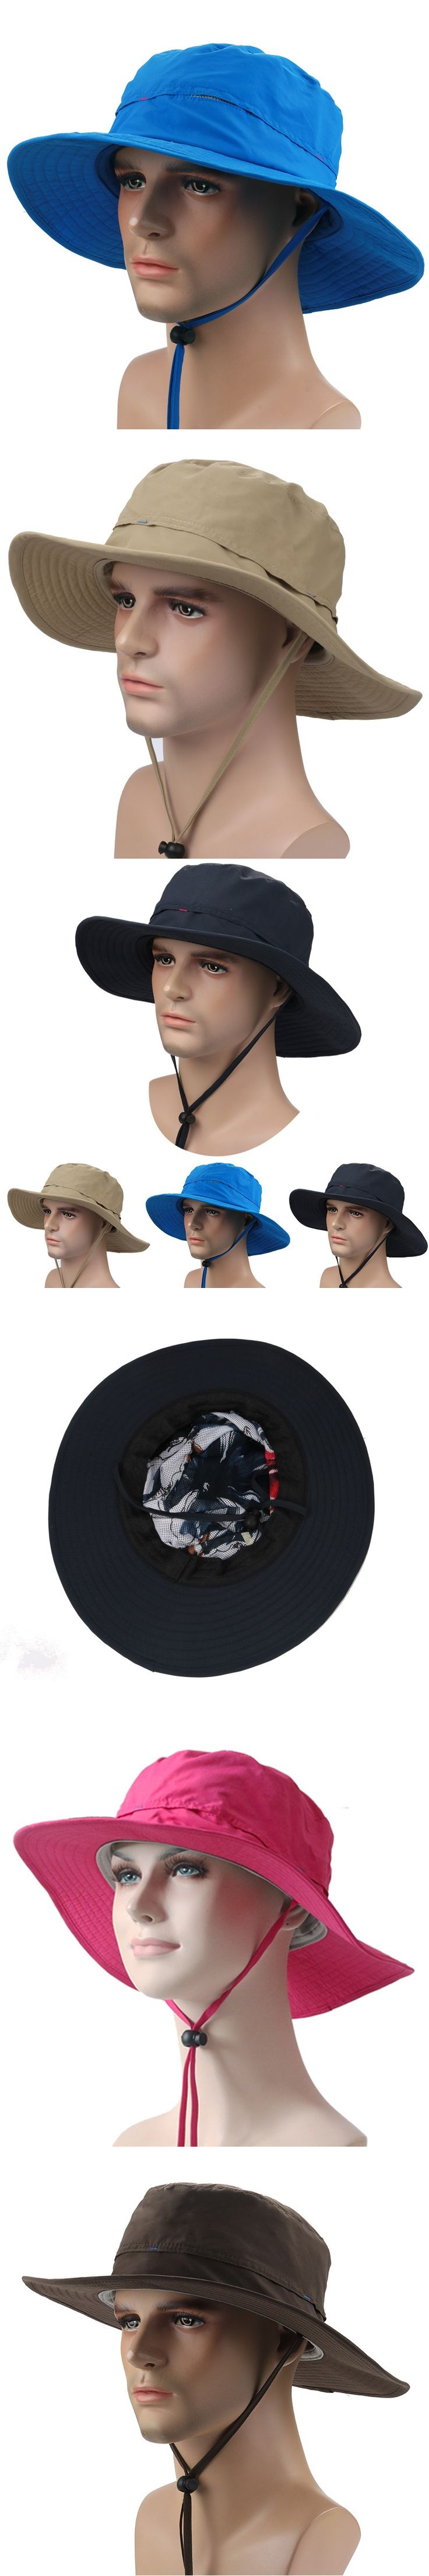 2017 New Outdoor Bucket Hat Brim Quick-drying Breathable Sun Hats Riding Hiking Fishing Climbing Jungle Hat Cap UV Protection